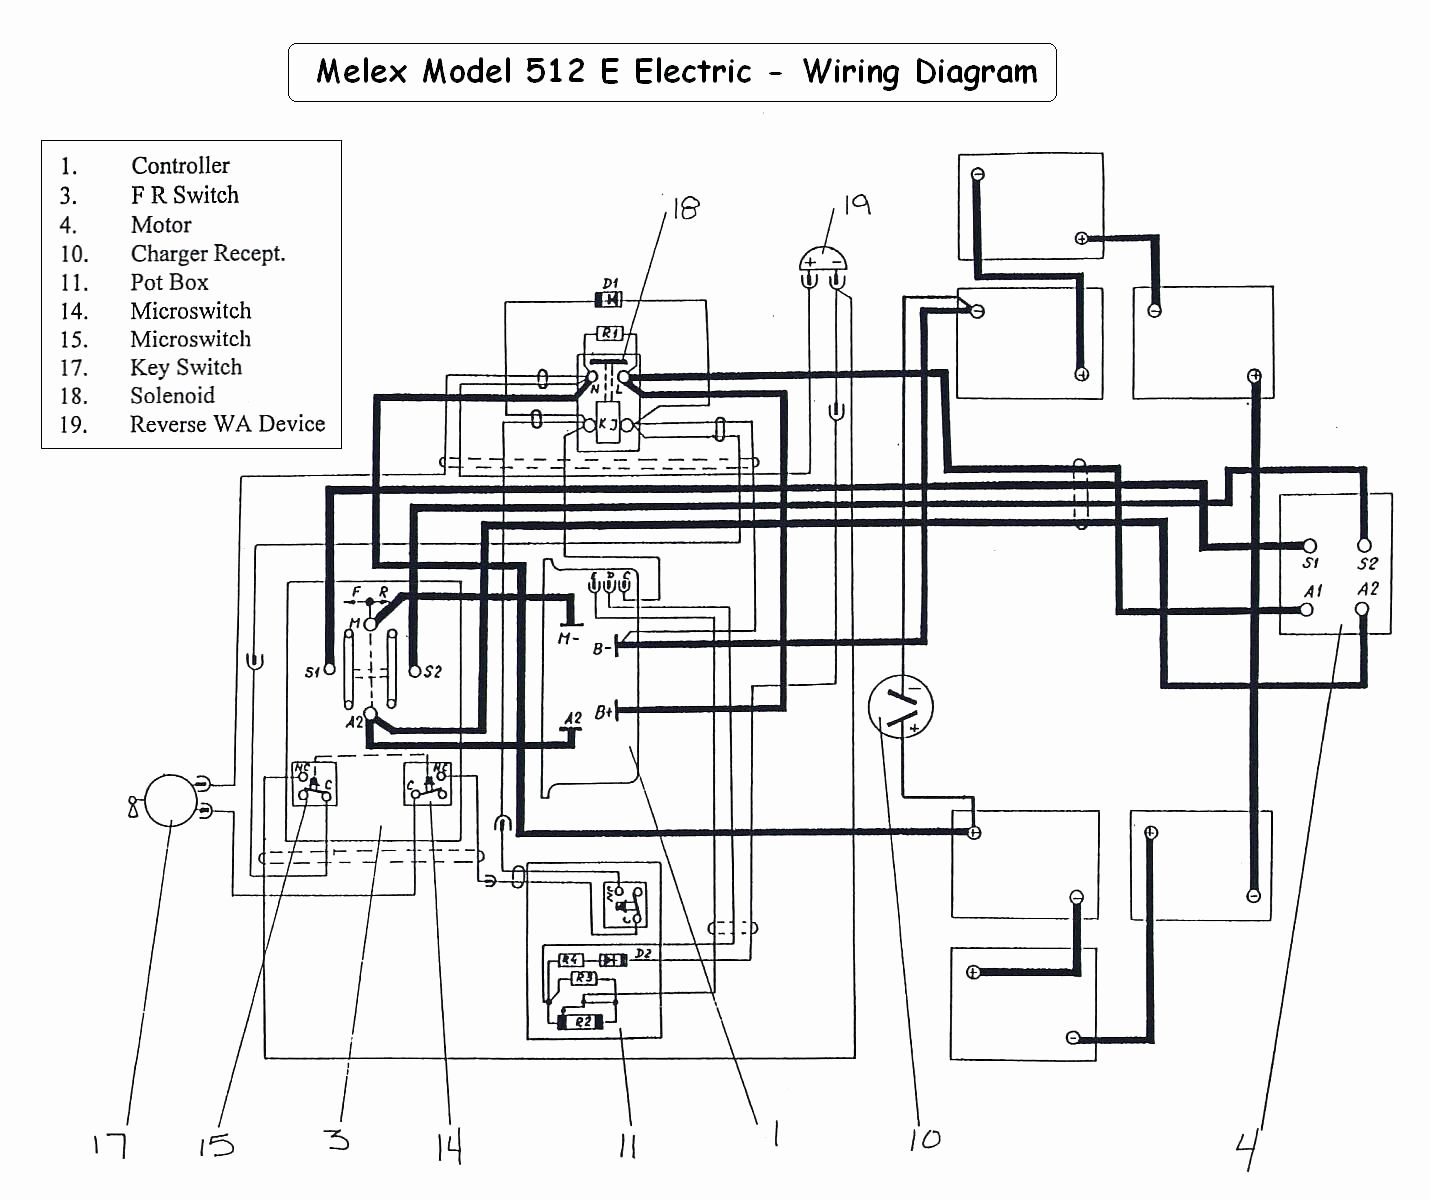 E Z Go Golf Cart Batteries Wiring Diagram | Wiring Diagram - Club Car Battery Wiring Diagram 48 Volt